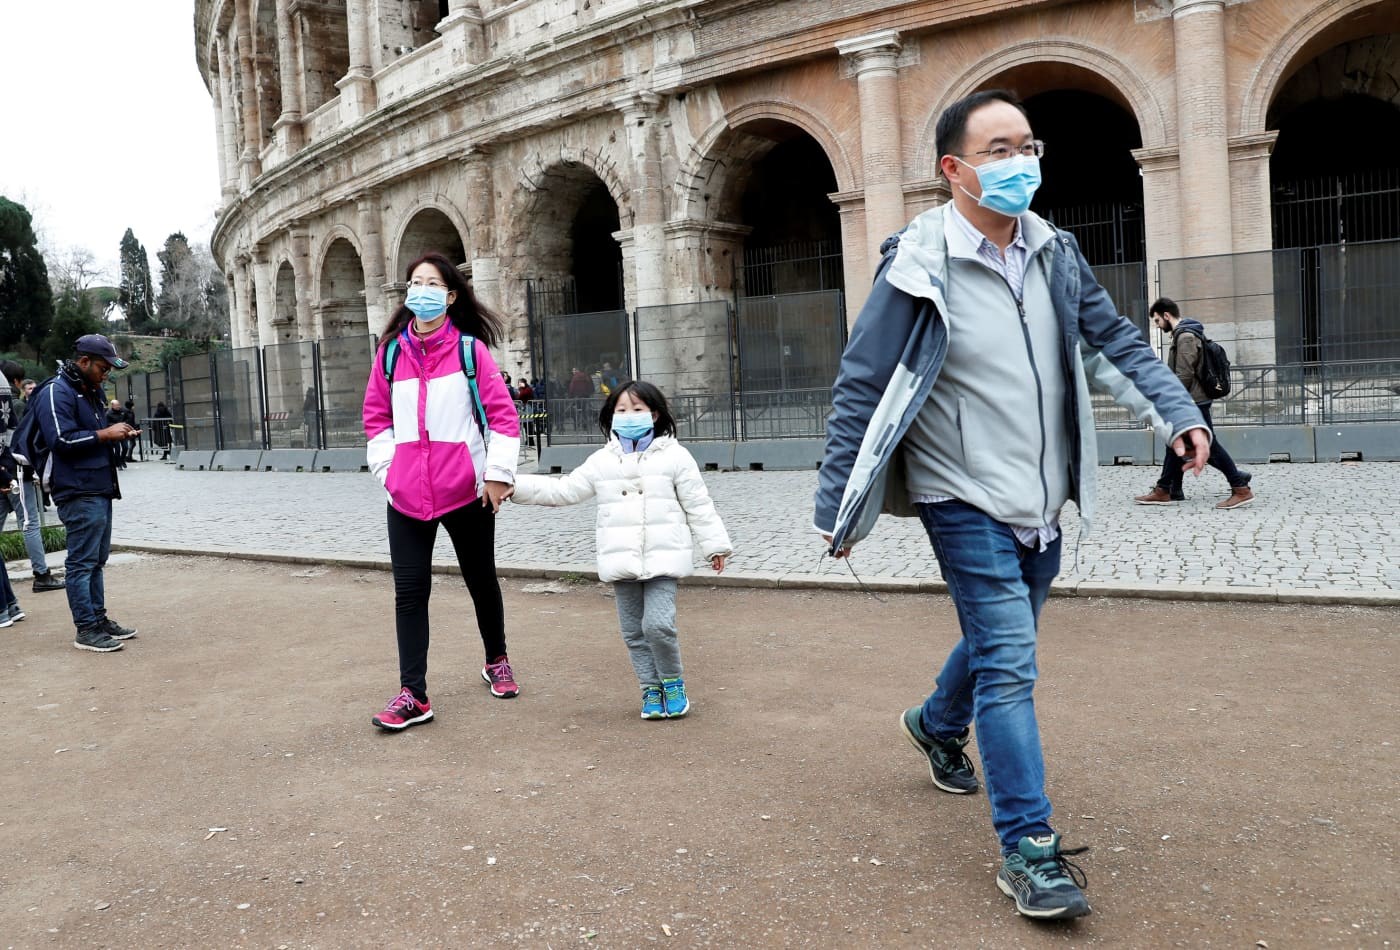 New coronavirus cases in Iran, Italy fuel concerns the disease cannot be contained